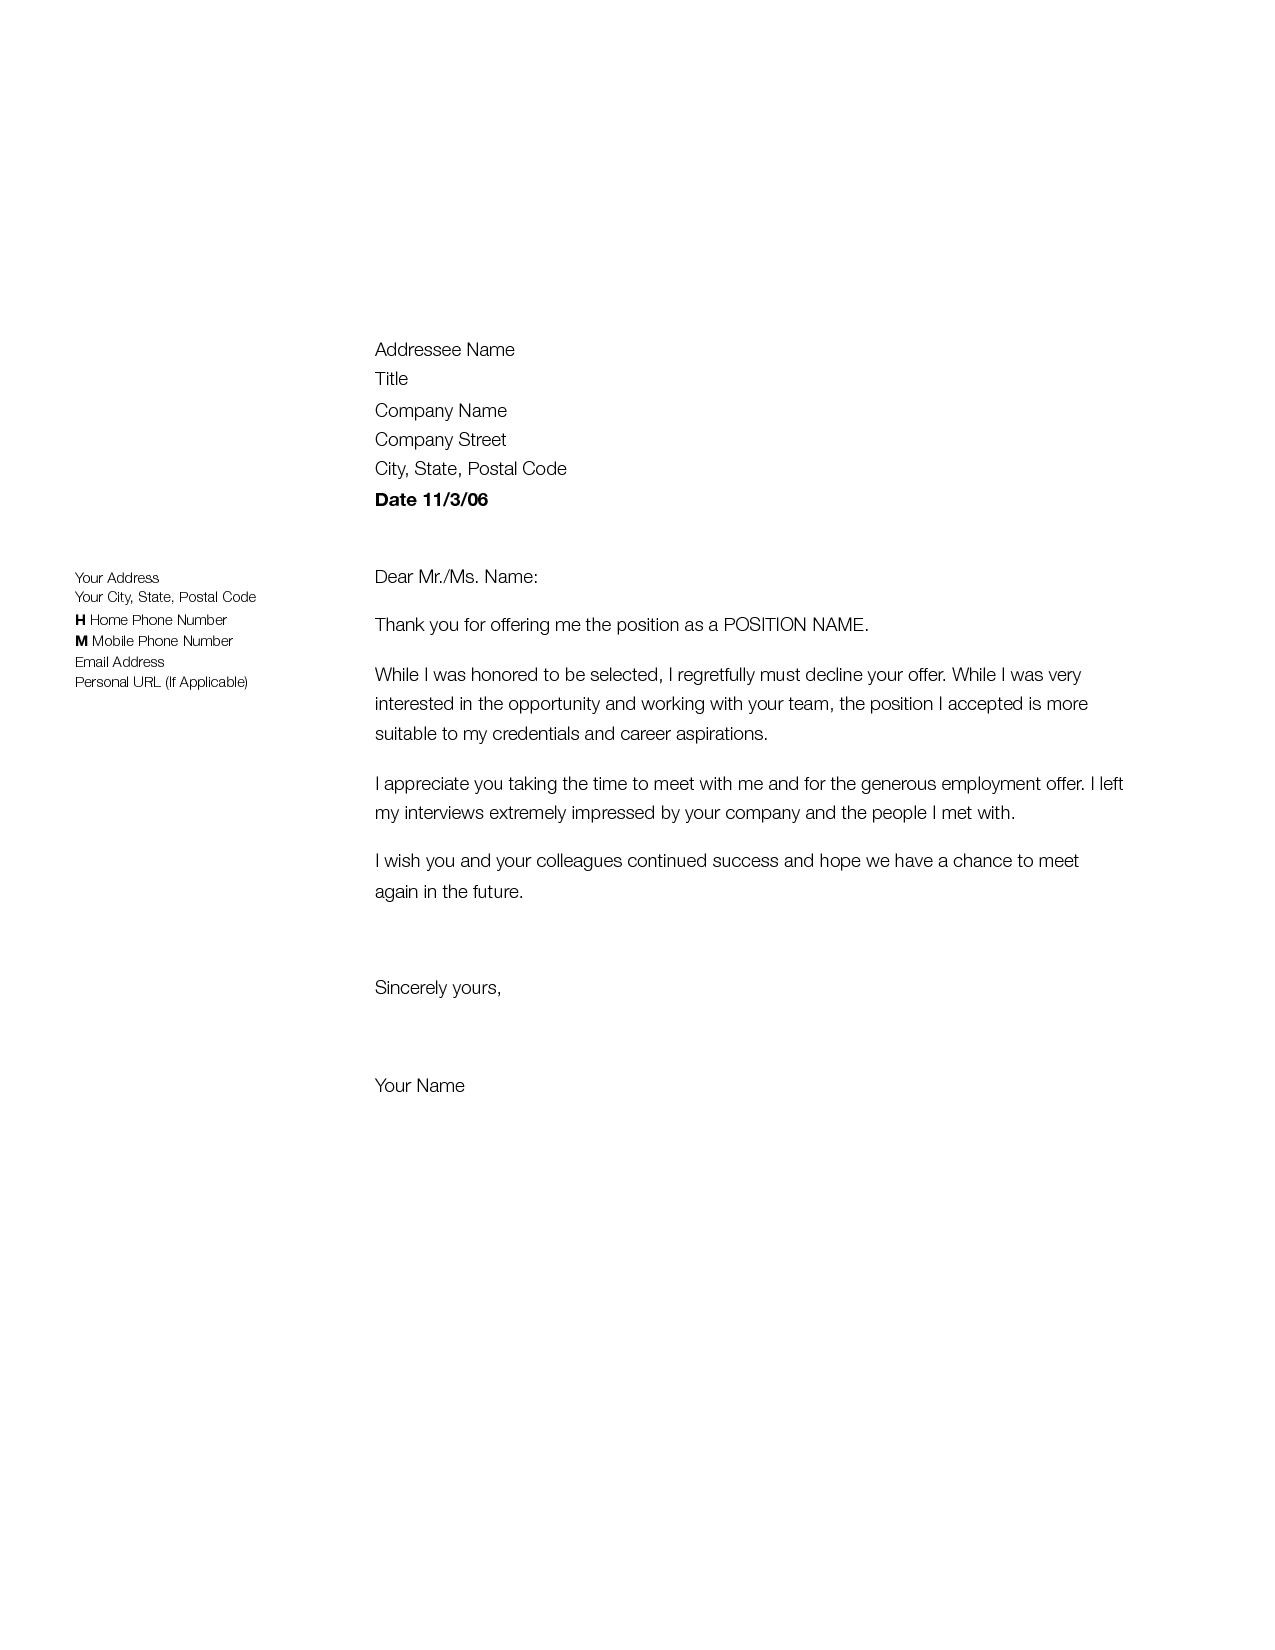 job offer rejection letter apology letter 2017 letter